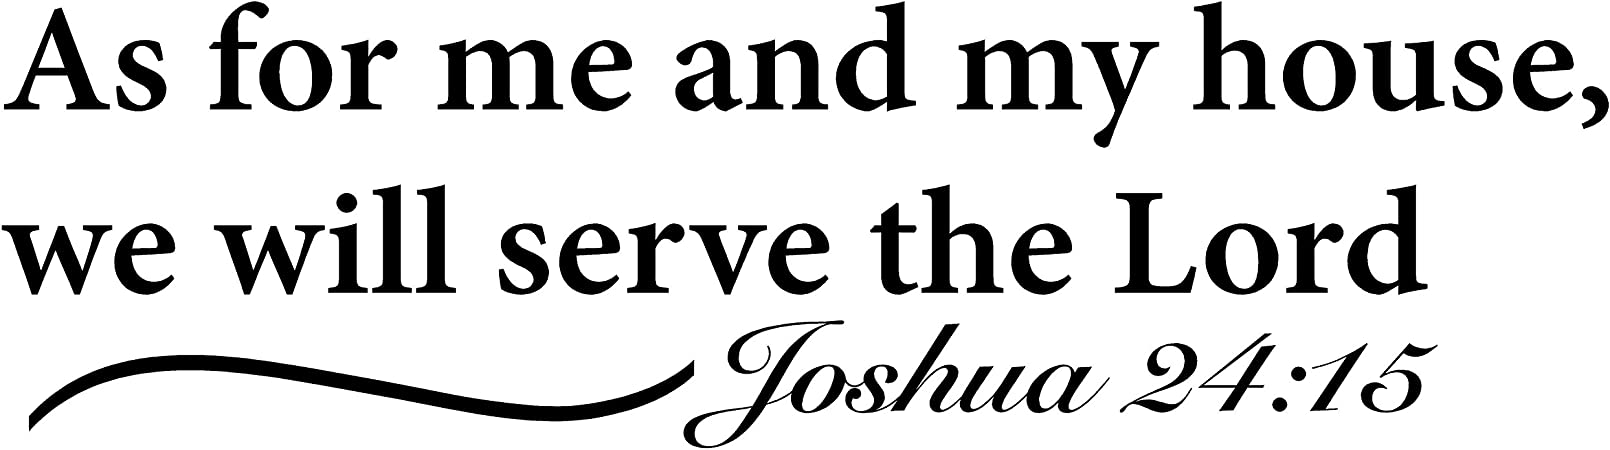 Amazon Com Katazoom Huge Sale As For Me And My House We Will Serve The Lord Joshua 24 15 Vinyl Wall Decal 22 X 6 Black Wall Decals Home Kitchen